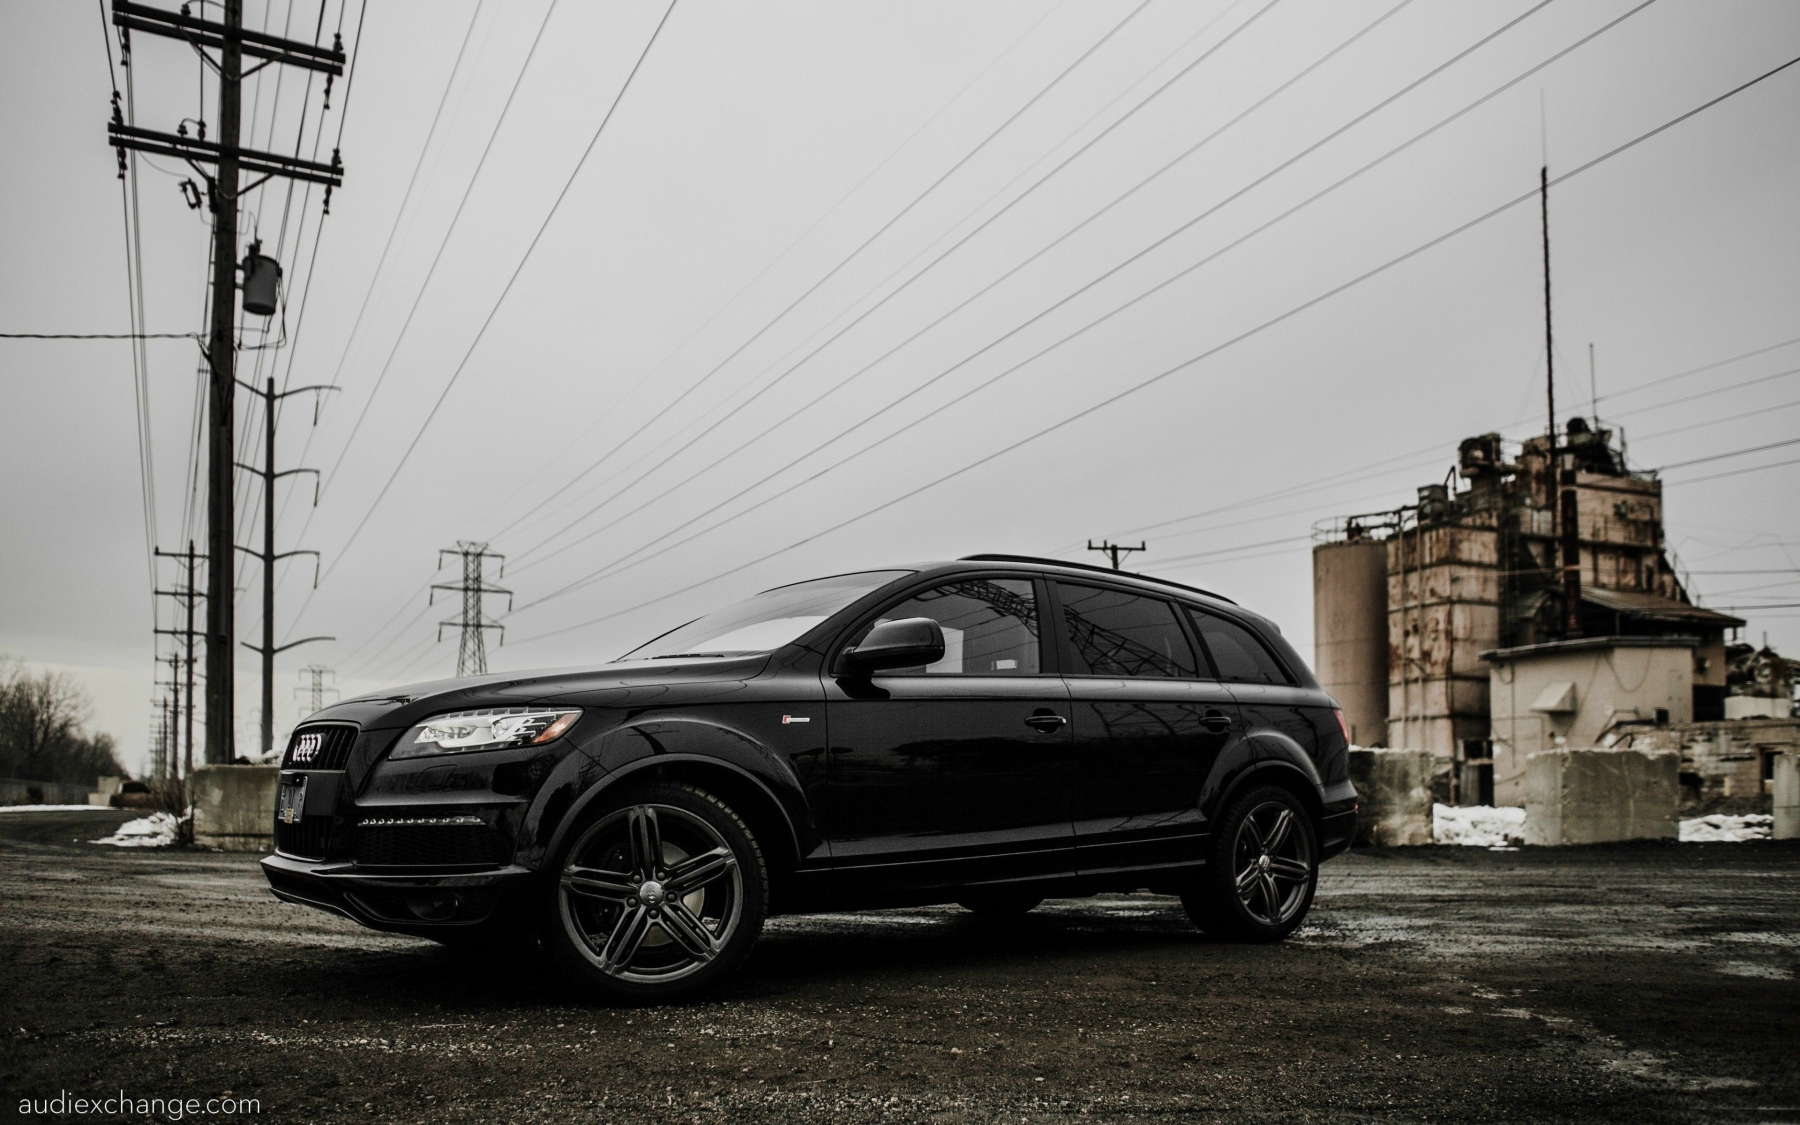 Audi Q7 Hd Wallpapers Background Images Photos